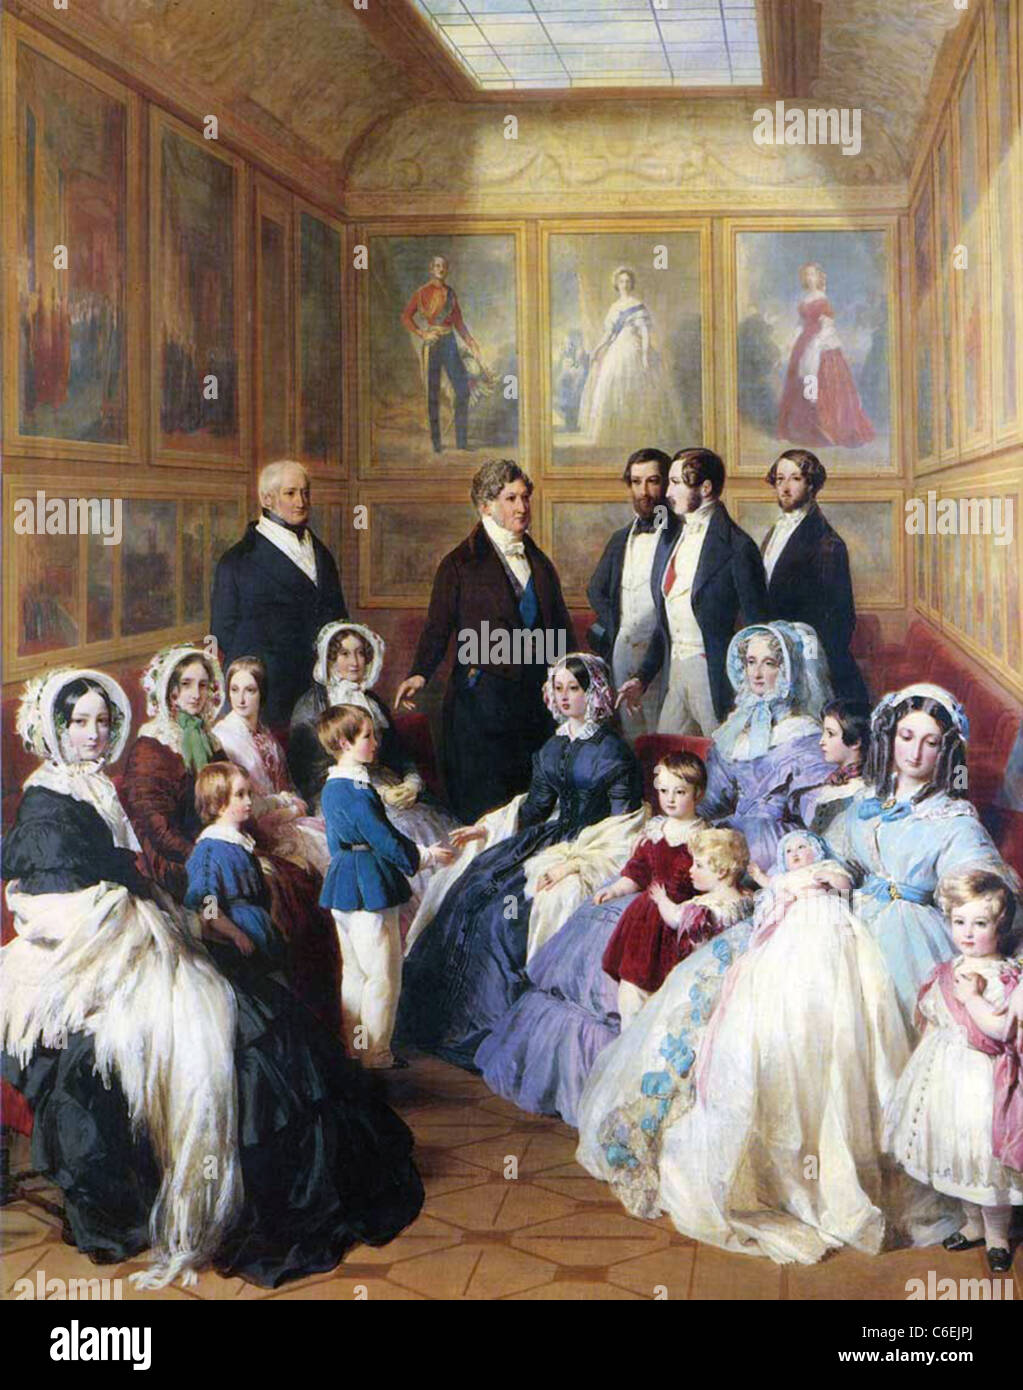 QUEEN VICTORIA and Prince Albert  receive French King Louis Philippe ! in 1844 in the painting by Franz Winterhalter - Stock Image